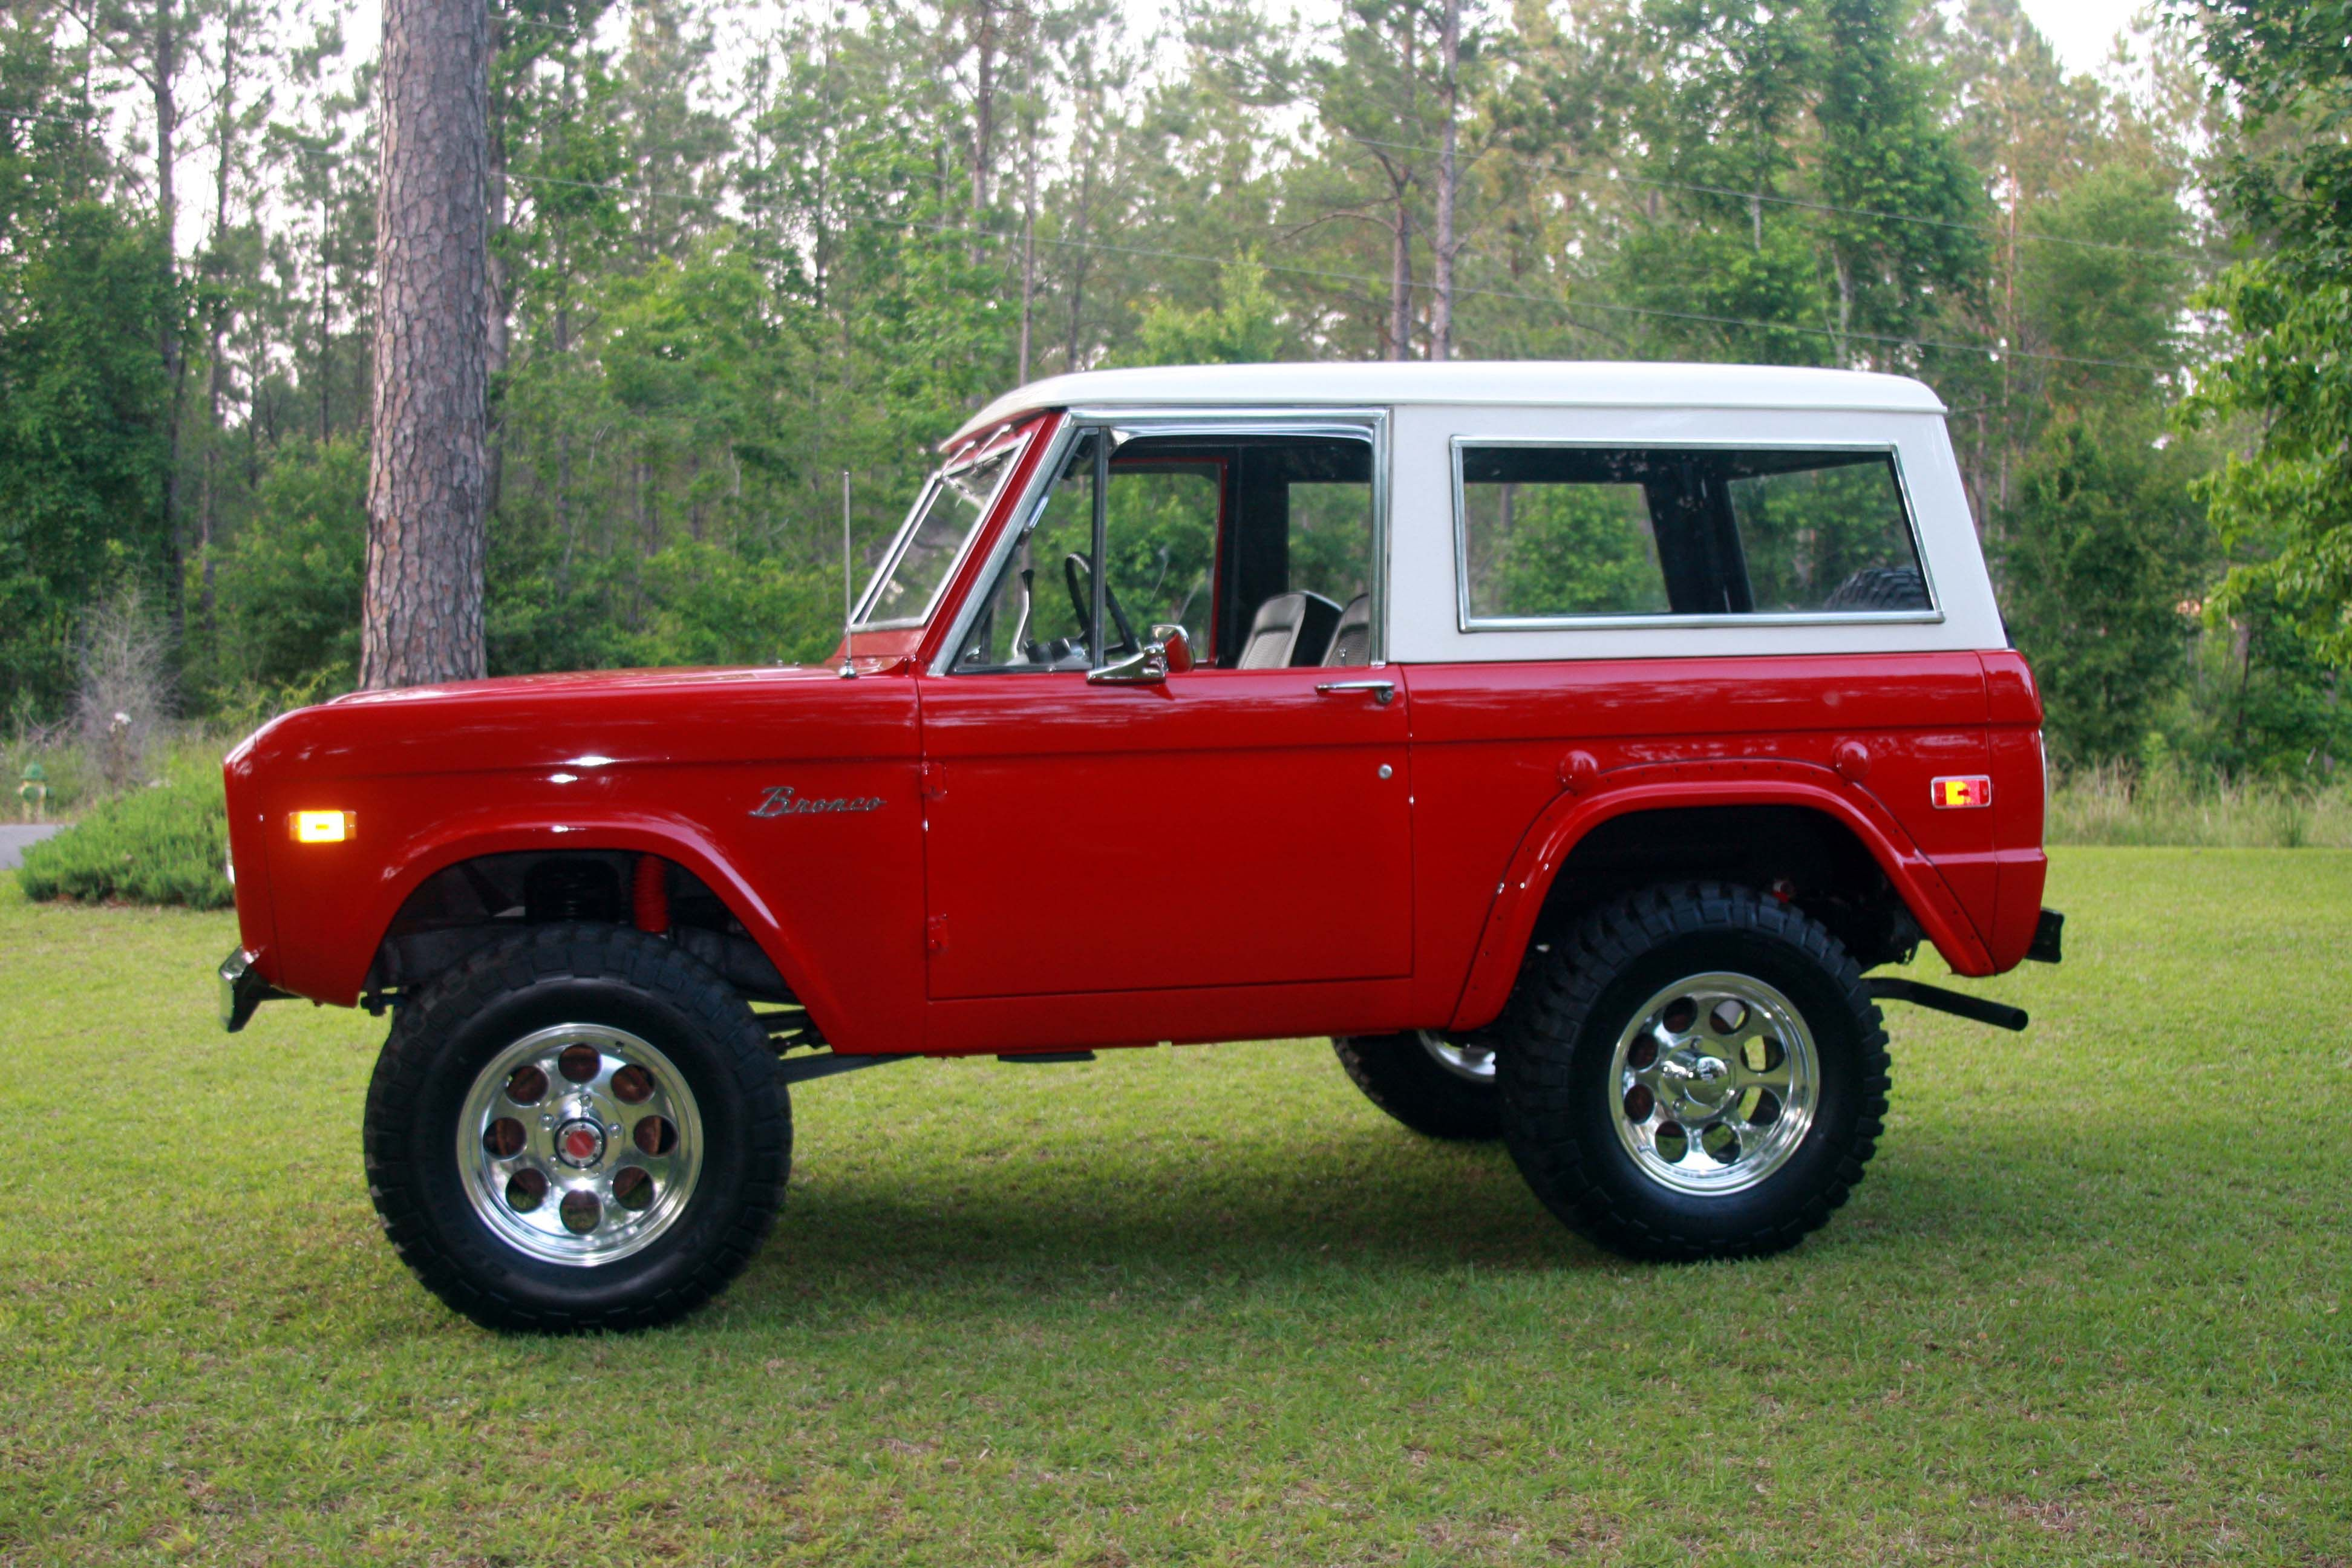 Classic Ford Bronco Would Love To Cruise Around In This With The Top Off The Broncos Top Tha Ford Bronco Classic Ford Broncos Old Ford Bronco